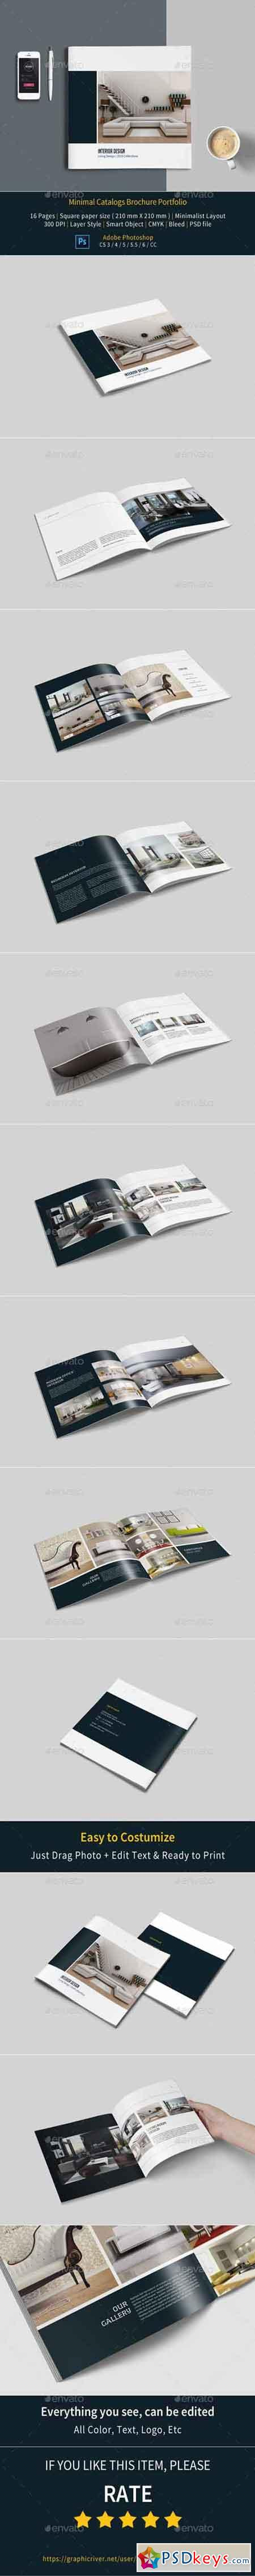 portfolio » page 26 » Free Download Photoshop Vector Stock